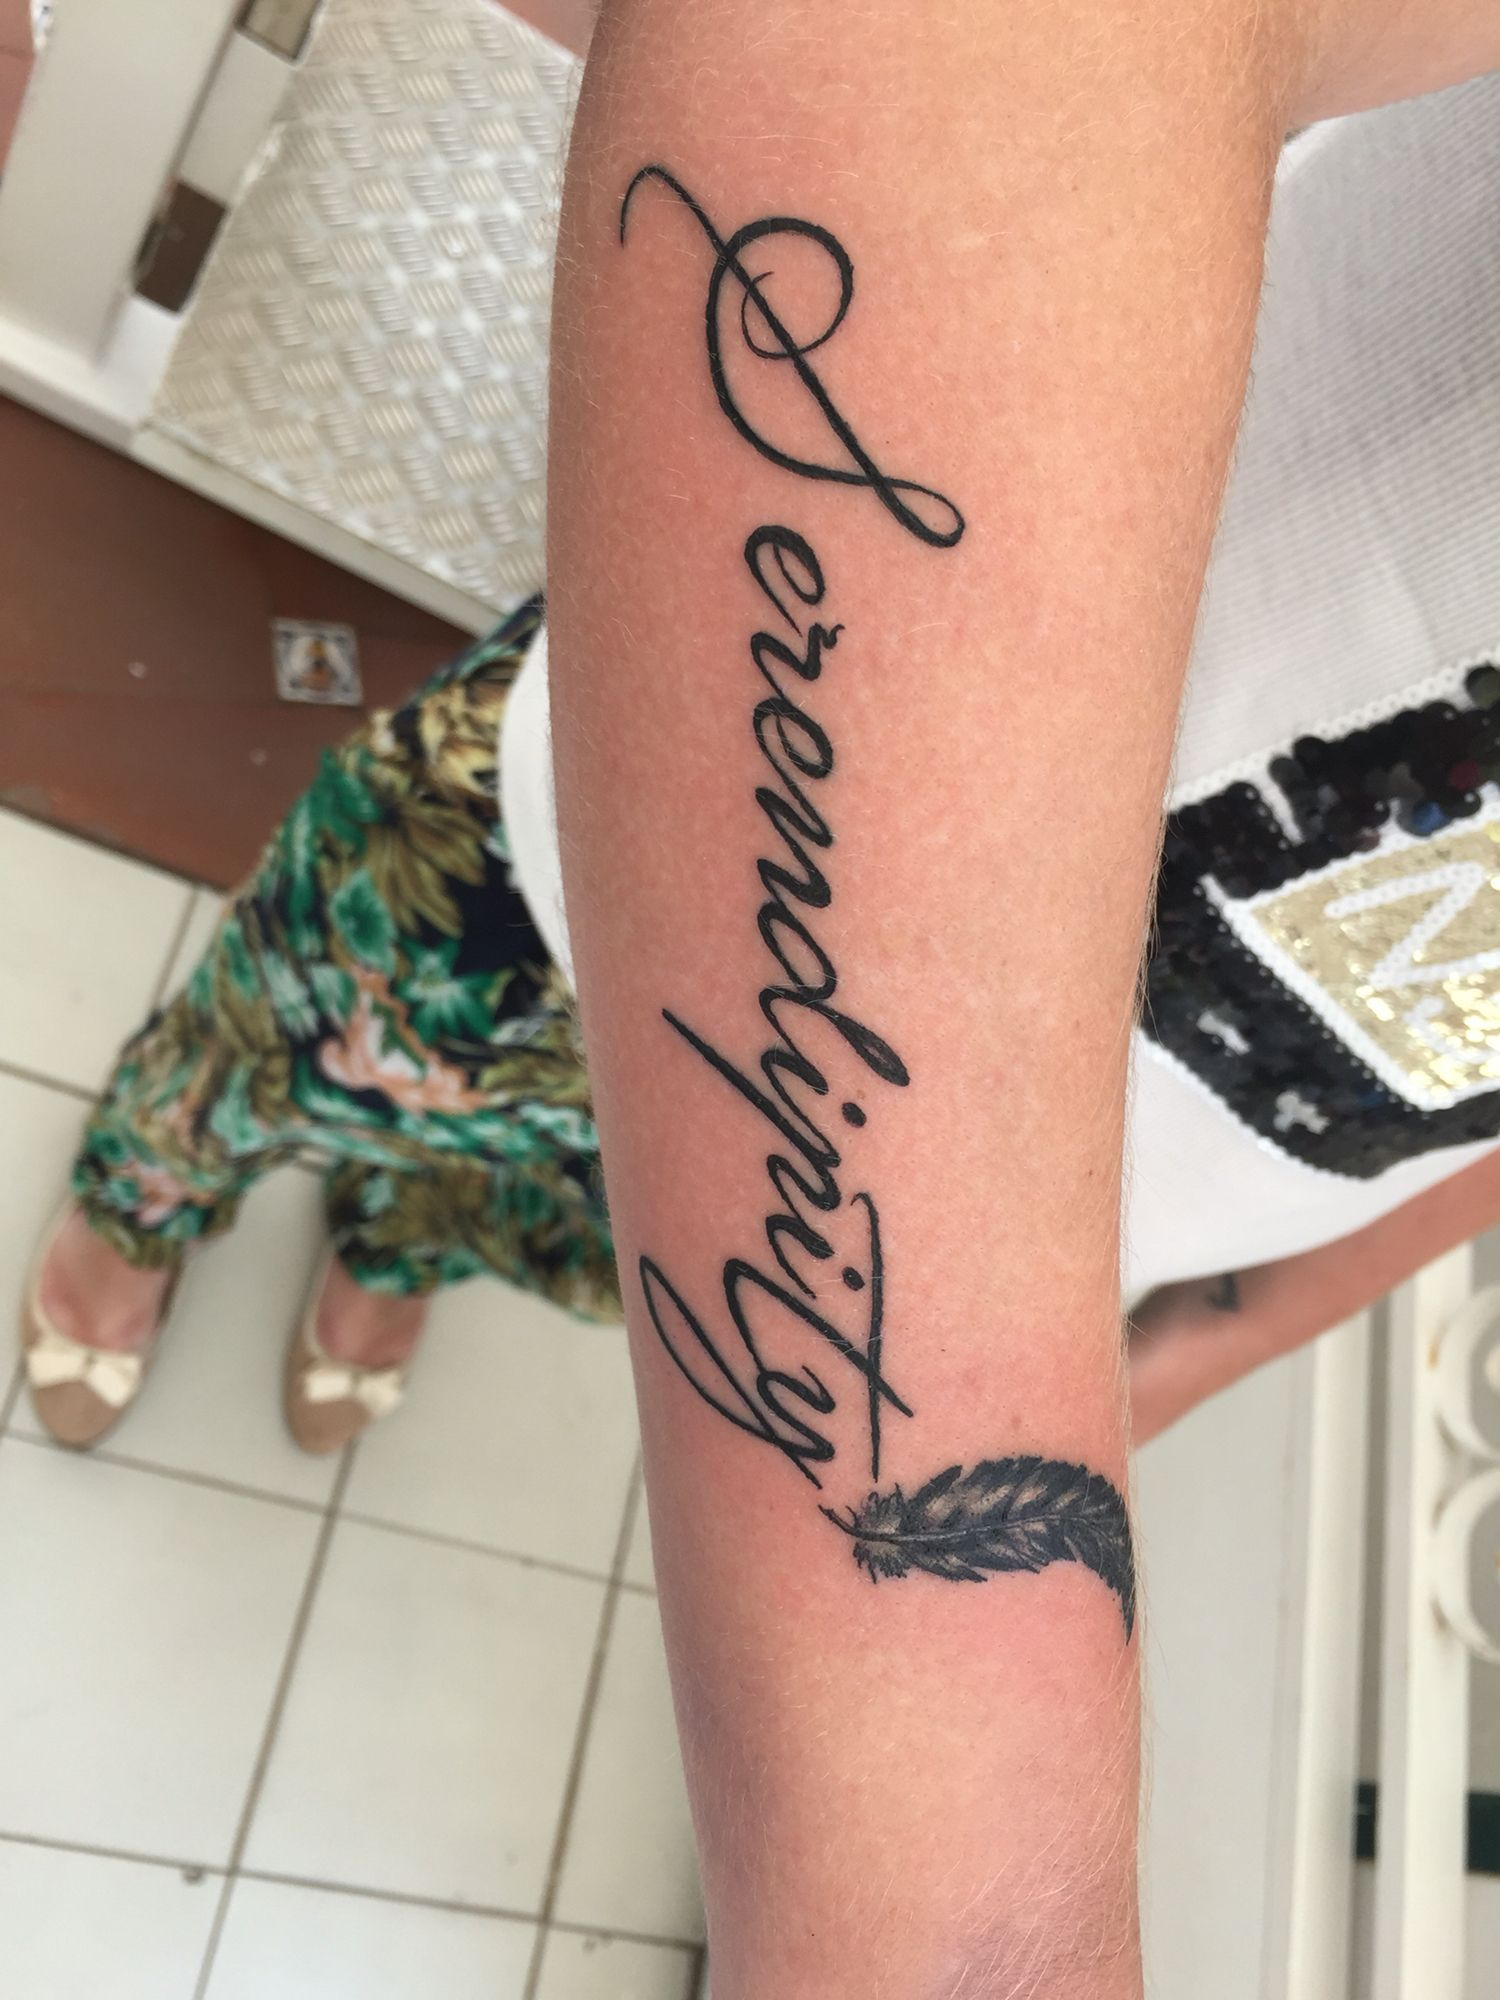 Serendipity 39 tattoo writing for girls female forearm for Tattoo forearm writing